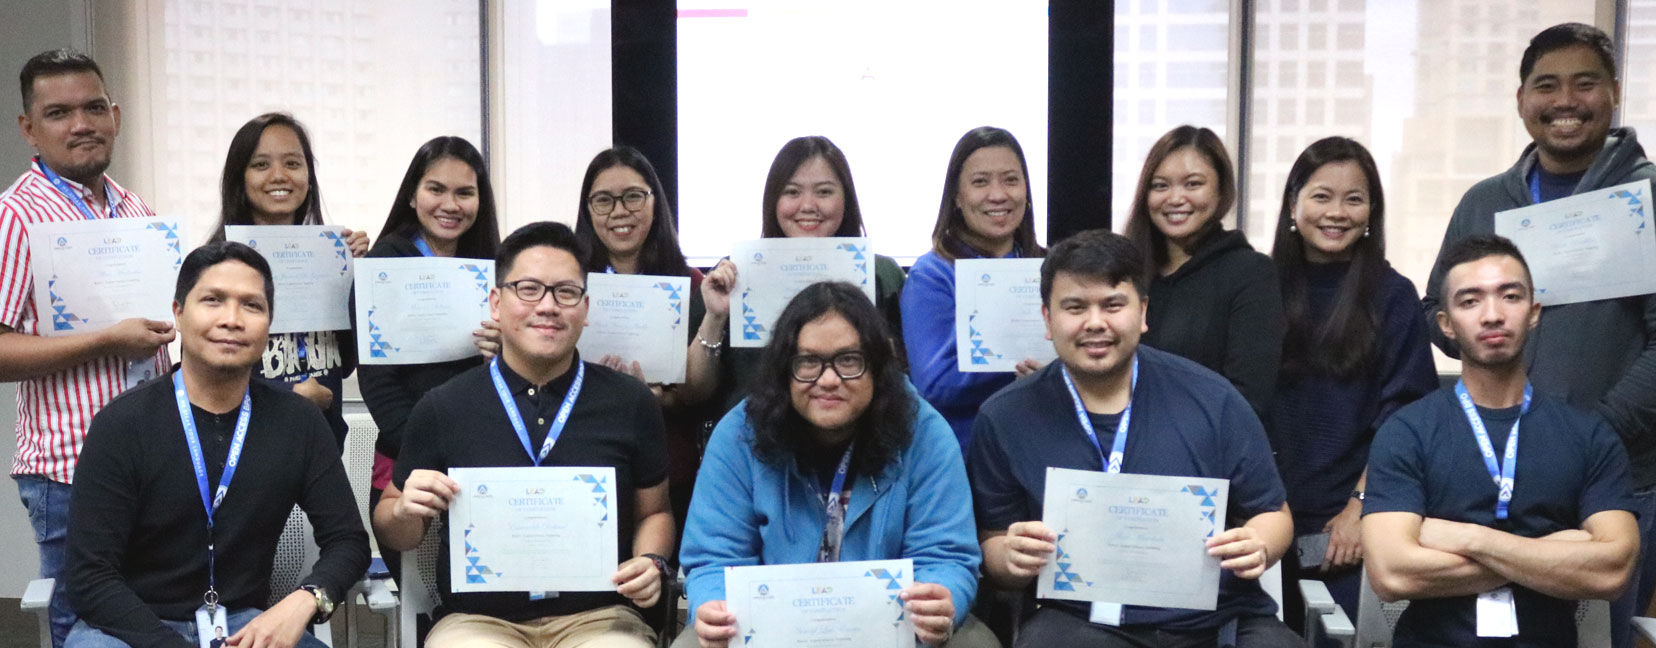 Open Access BPO launches employee leadership training program